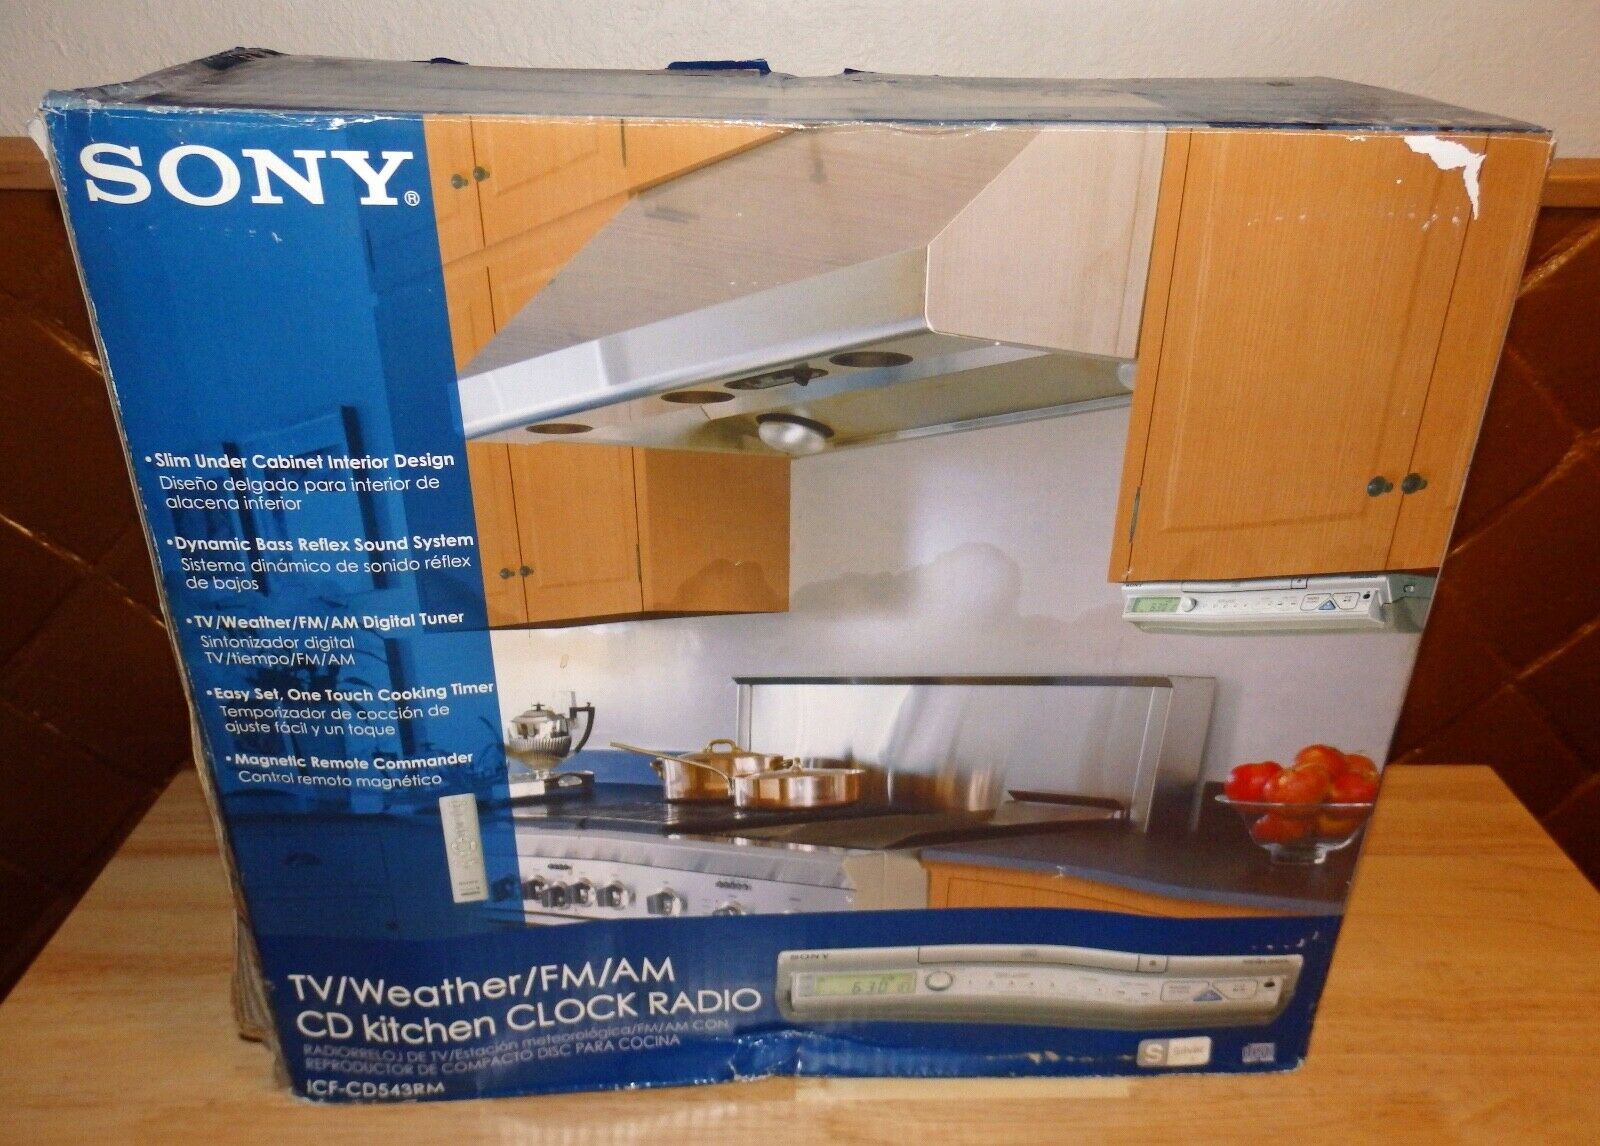 Sony Icf Cd543rm Kitchen Clock Radio Cd Player Am Fm Weather Radio Mega Bass For Sale Online Ebay